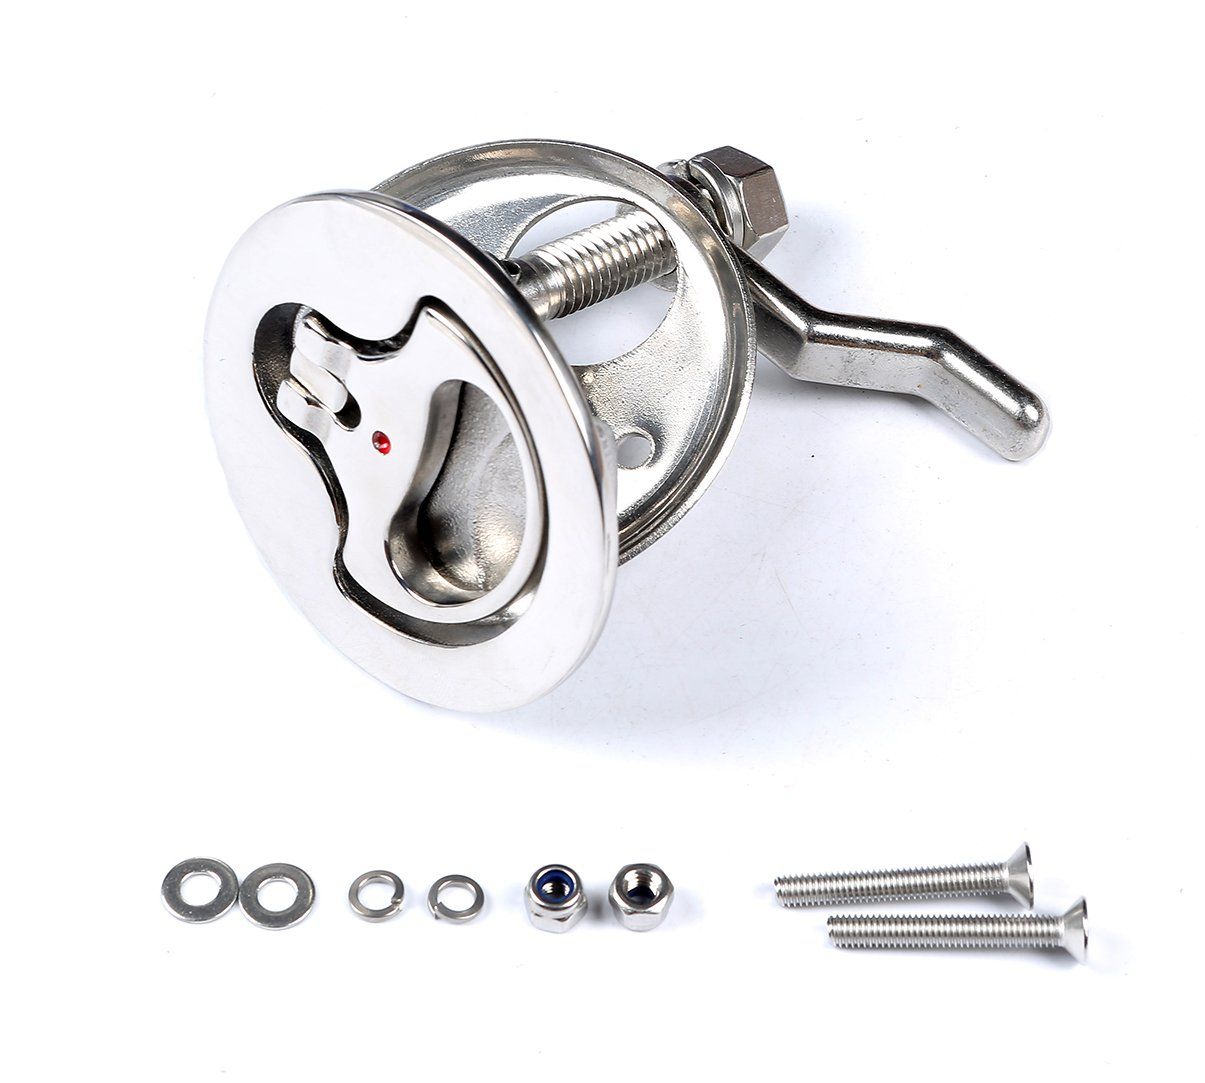 MxEol Boat Stainless Steel Cam Latch Marine Hatch Pull with Back Plate Fasteners